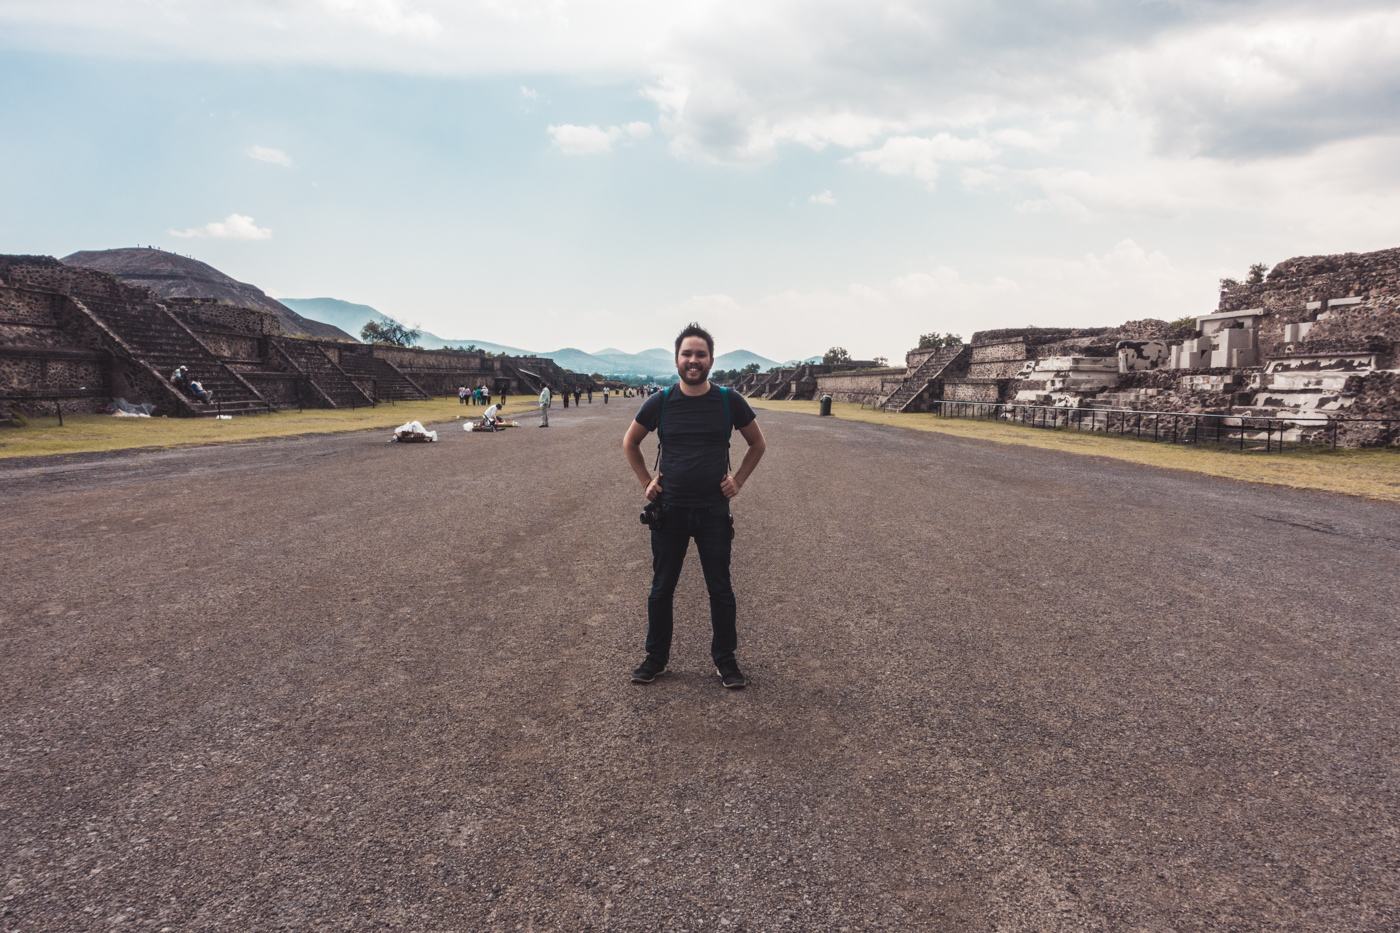 Avenue of the Dead, Teotihuacán